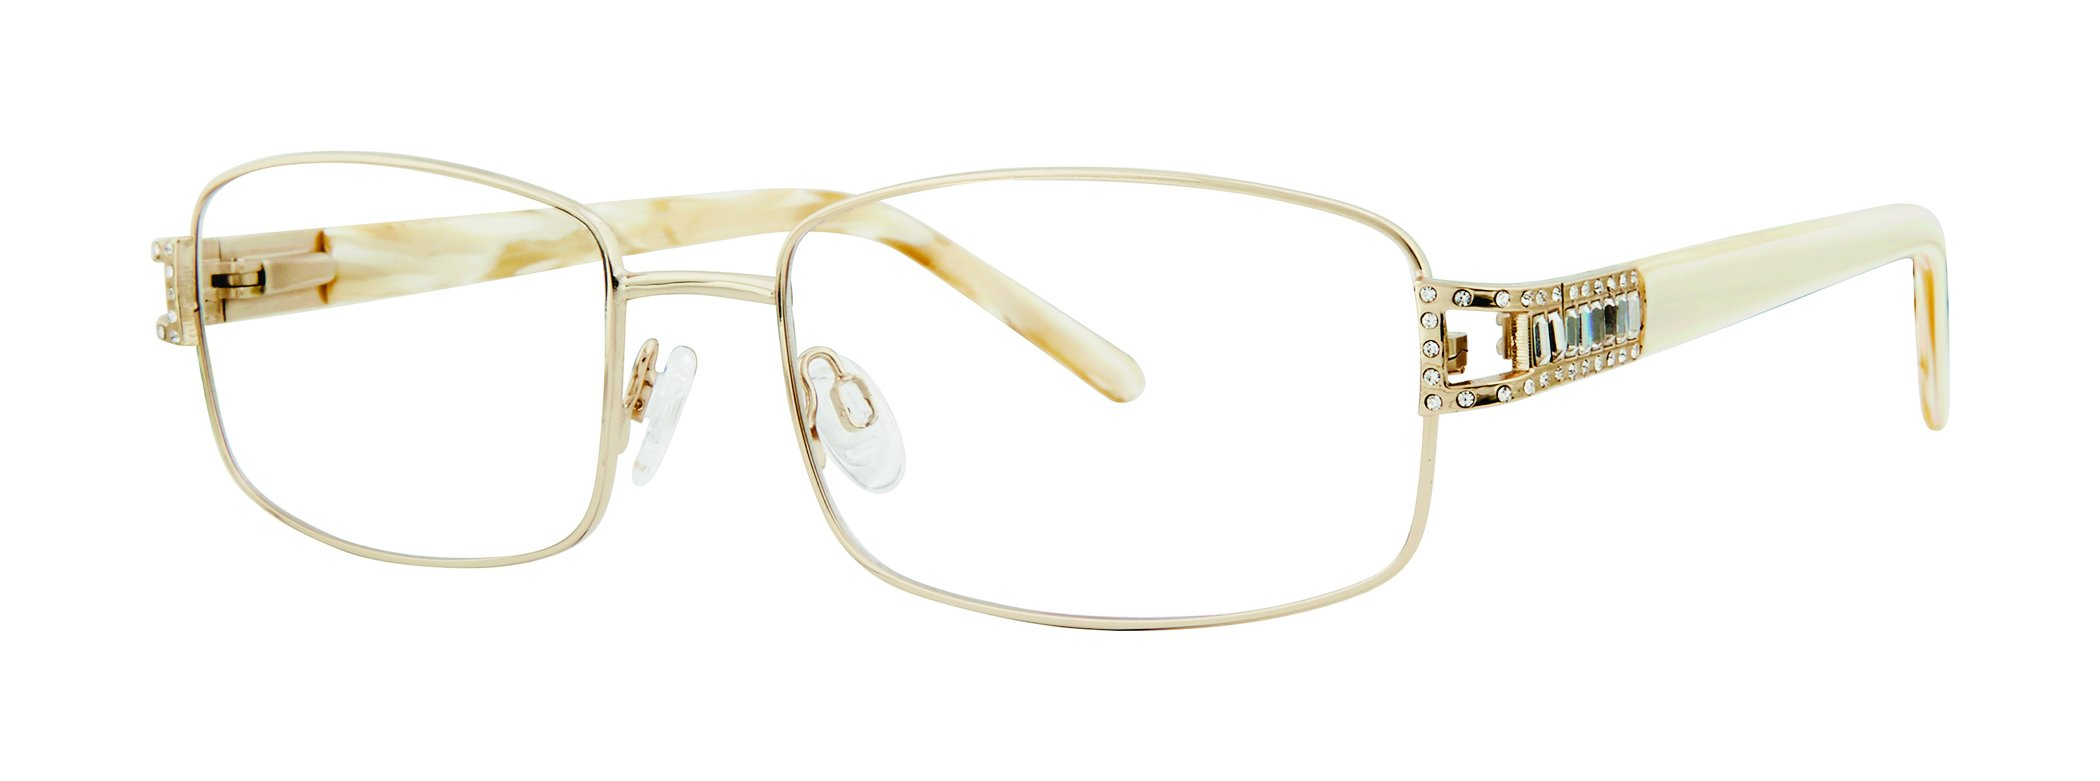 Significant Women's Eyeglasses - GB+ Collection Stainless Steel Frames - Gold 58-18-145 by GENEVIEVE BOUTIQUE